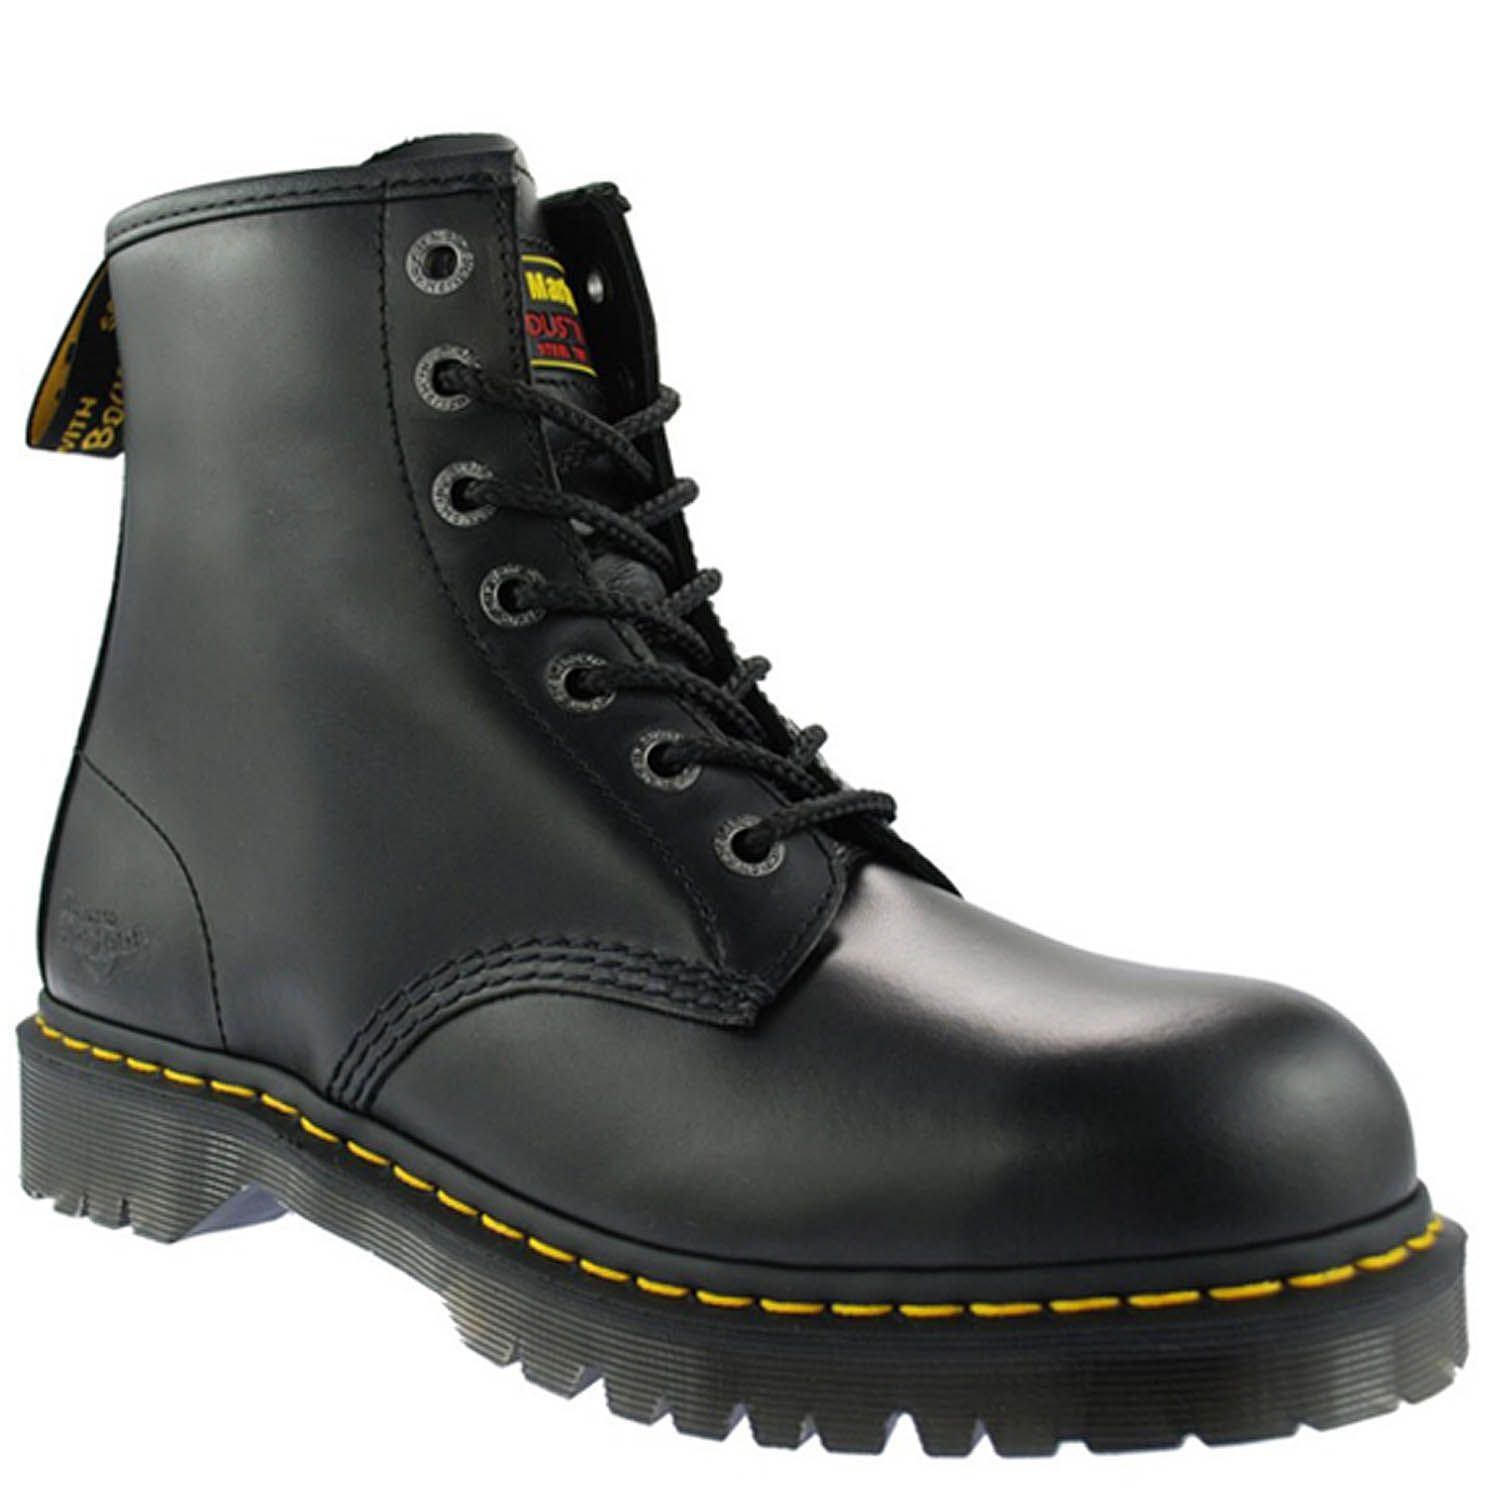 Dr. martens : icon sicherheitsschuh icon 20345 7B10 adulte-noir : certification B07CH9GBM7 eN iSO 20345 sB e: Noir cfb62f7 - conorscully.space